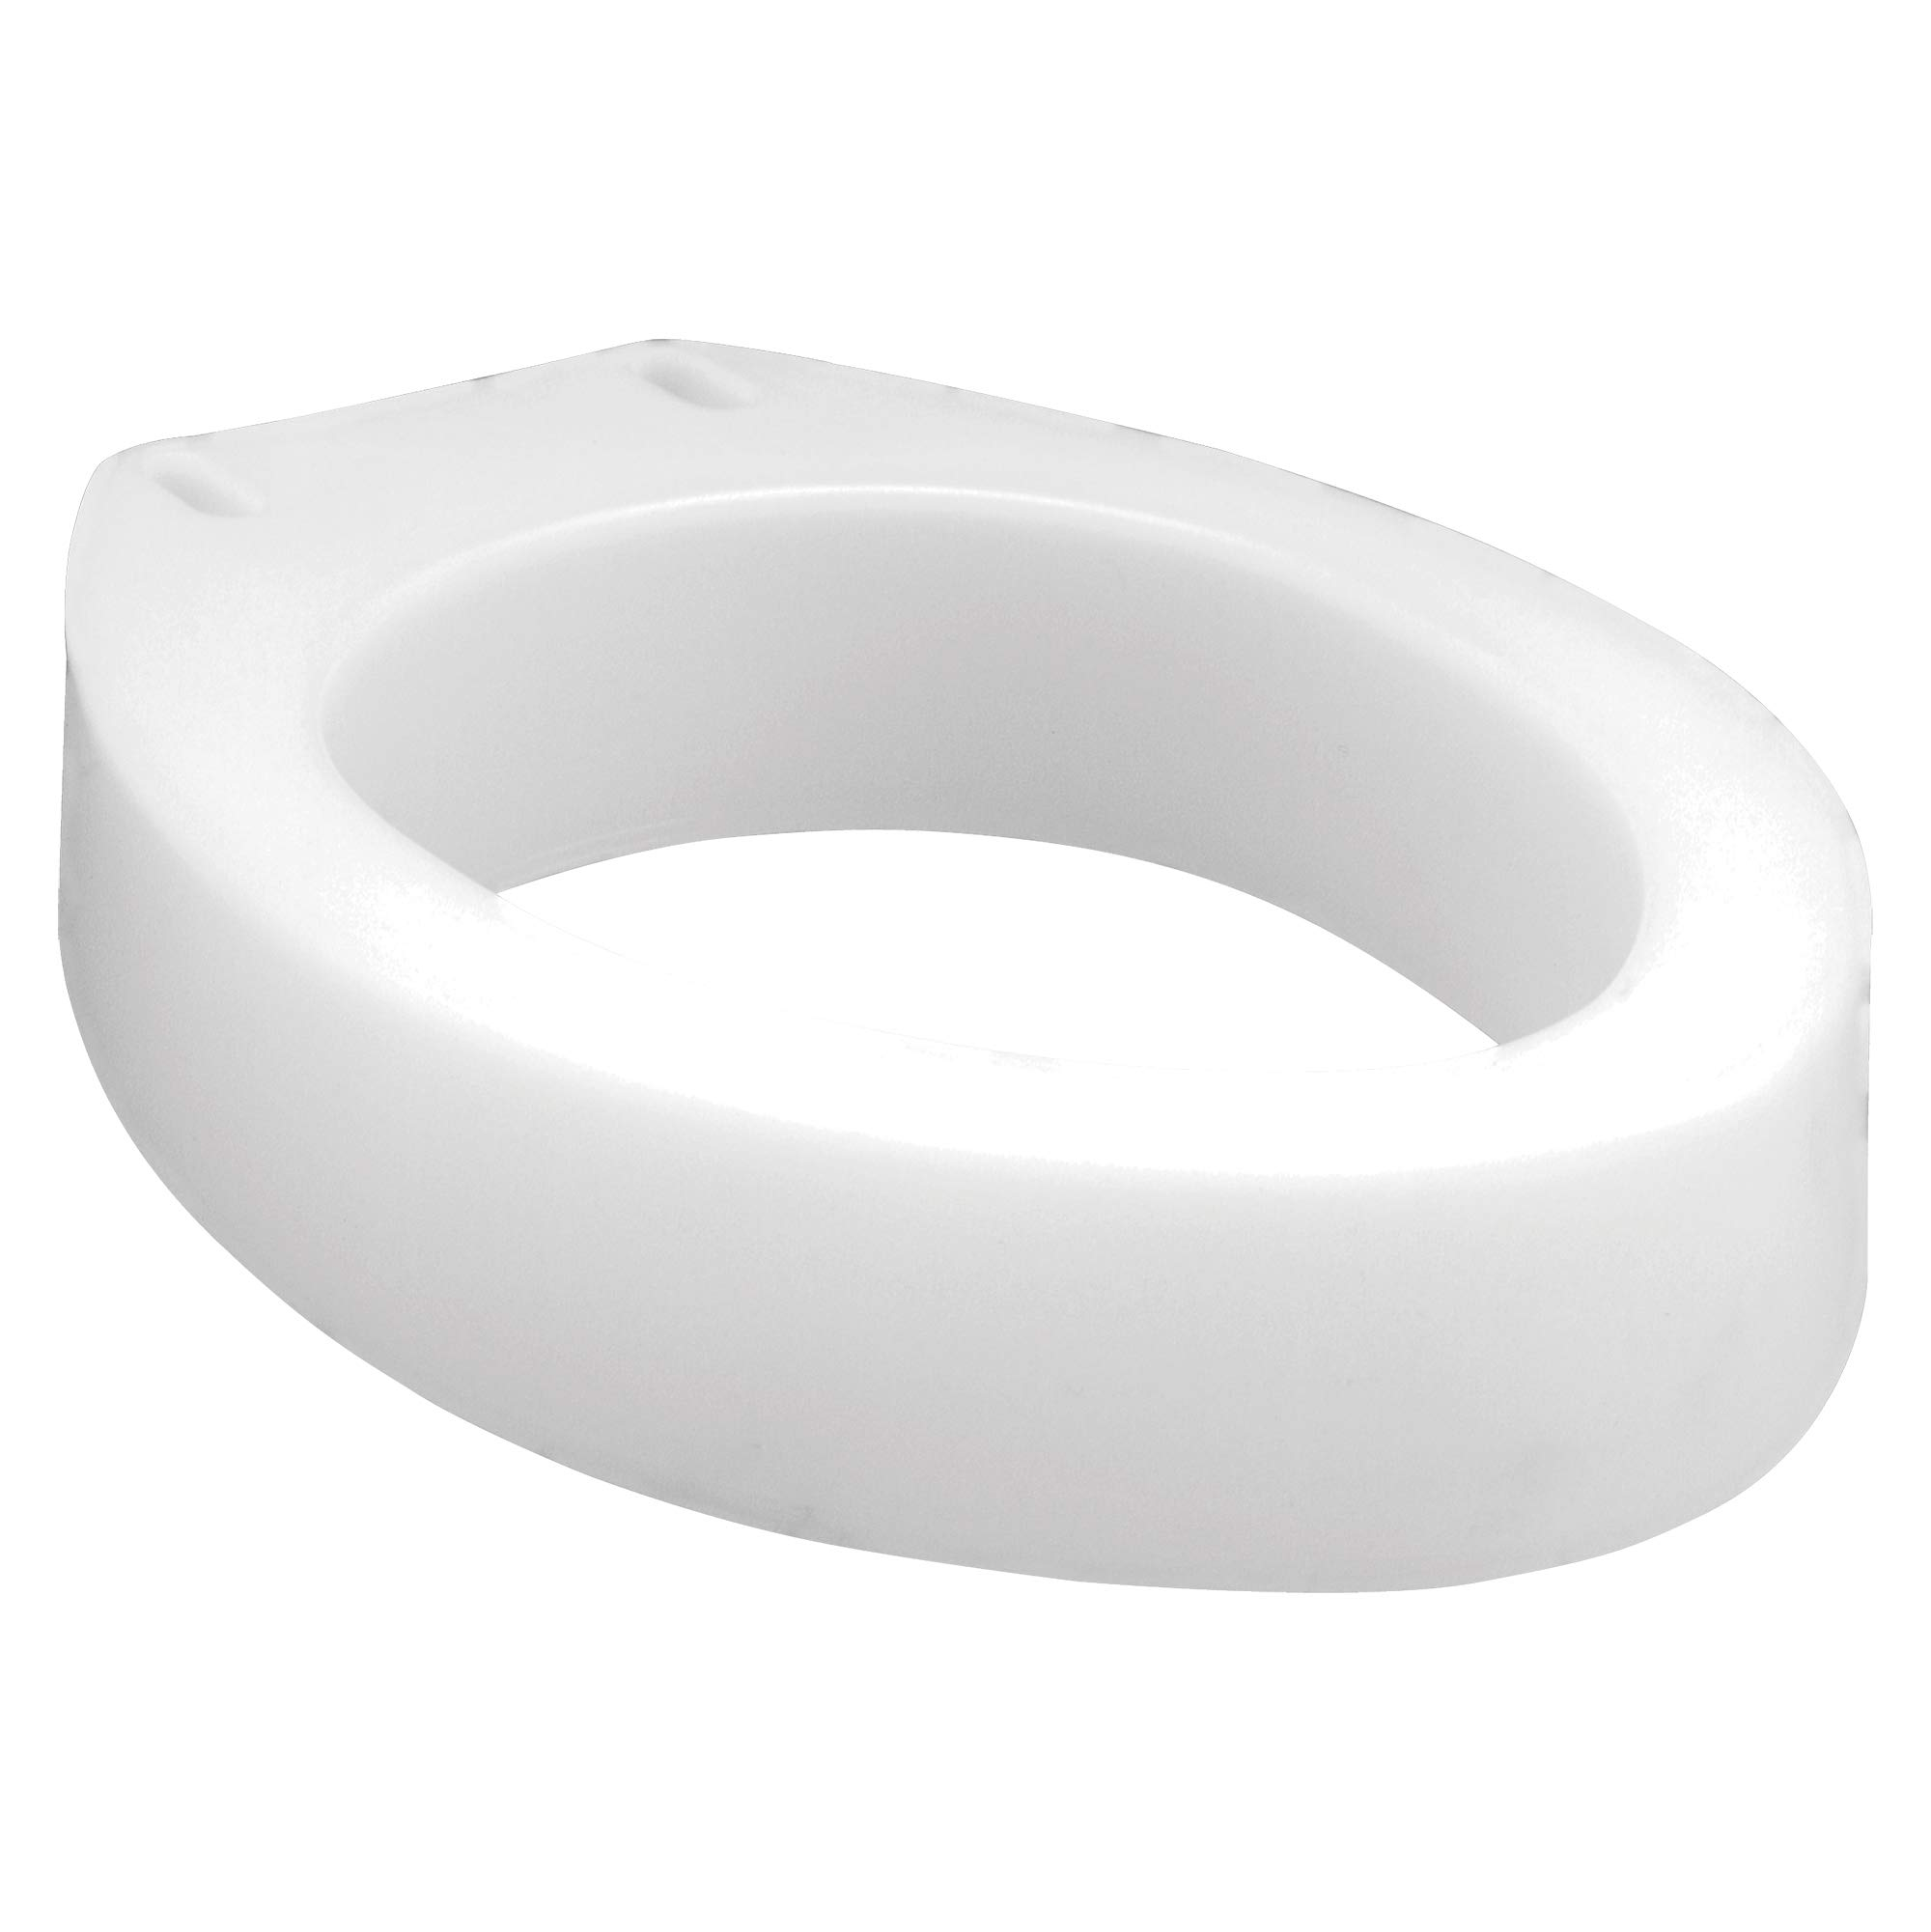 Carex Toilet Seat Riser, Elongated Raised Toilet Seat Adds 3.5 inches to Toilet Height, for Assistance Bending or Sitting, 300 Pound Weight Capacity